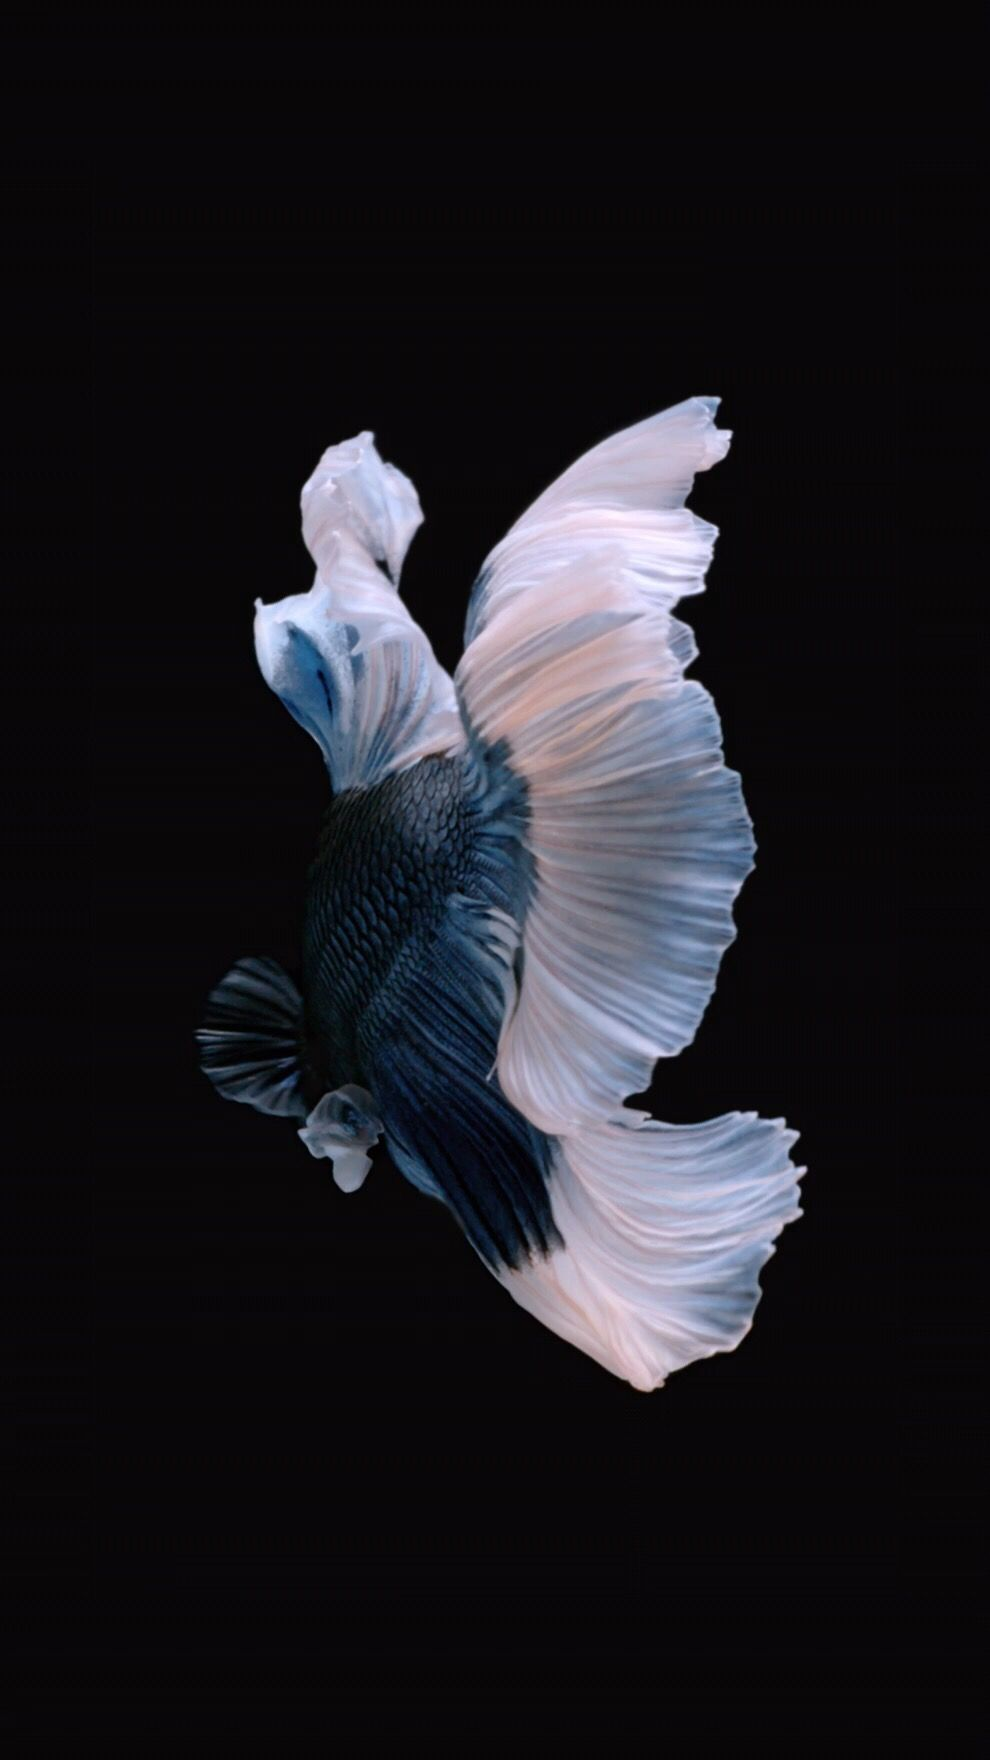 Pin By Lillion On Thailand With Images Live Fish Wallpaper